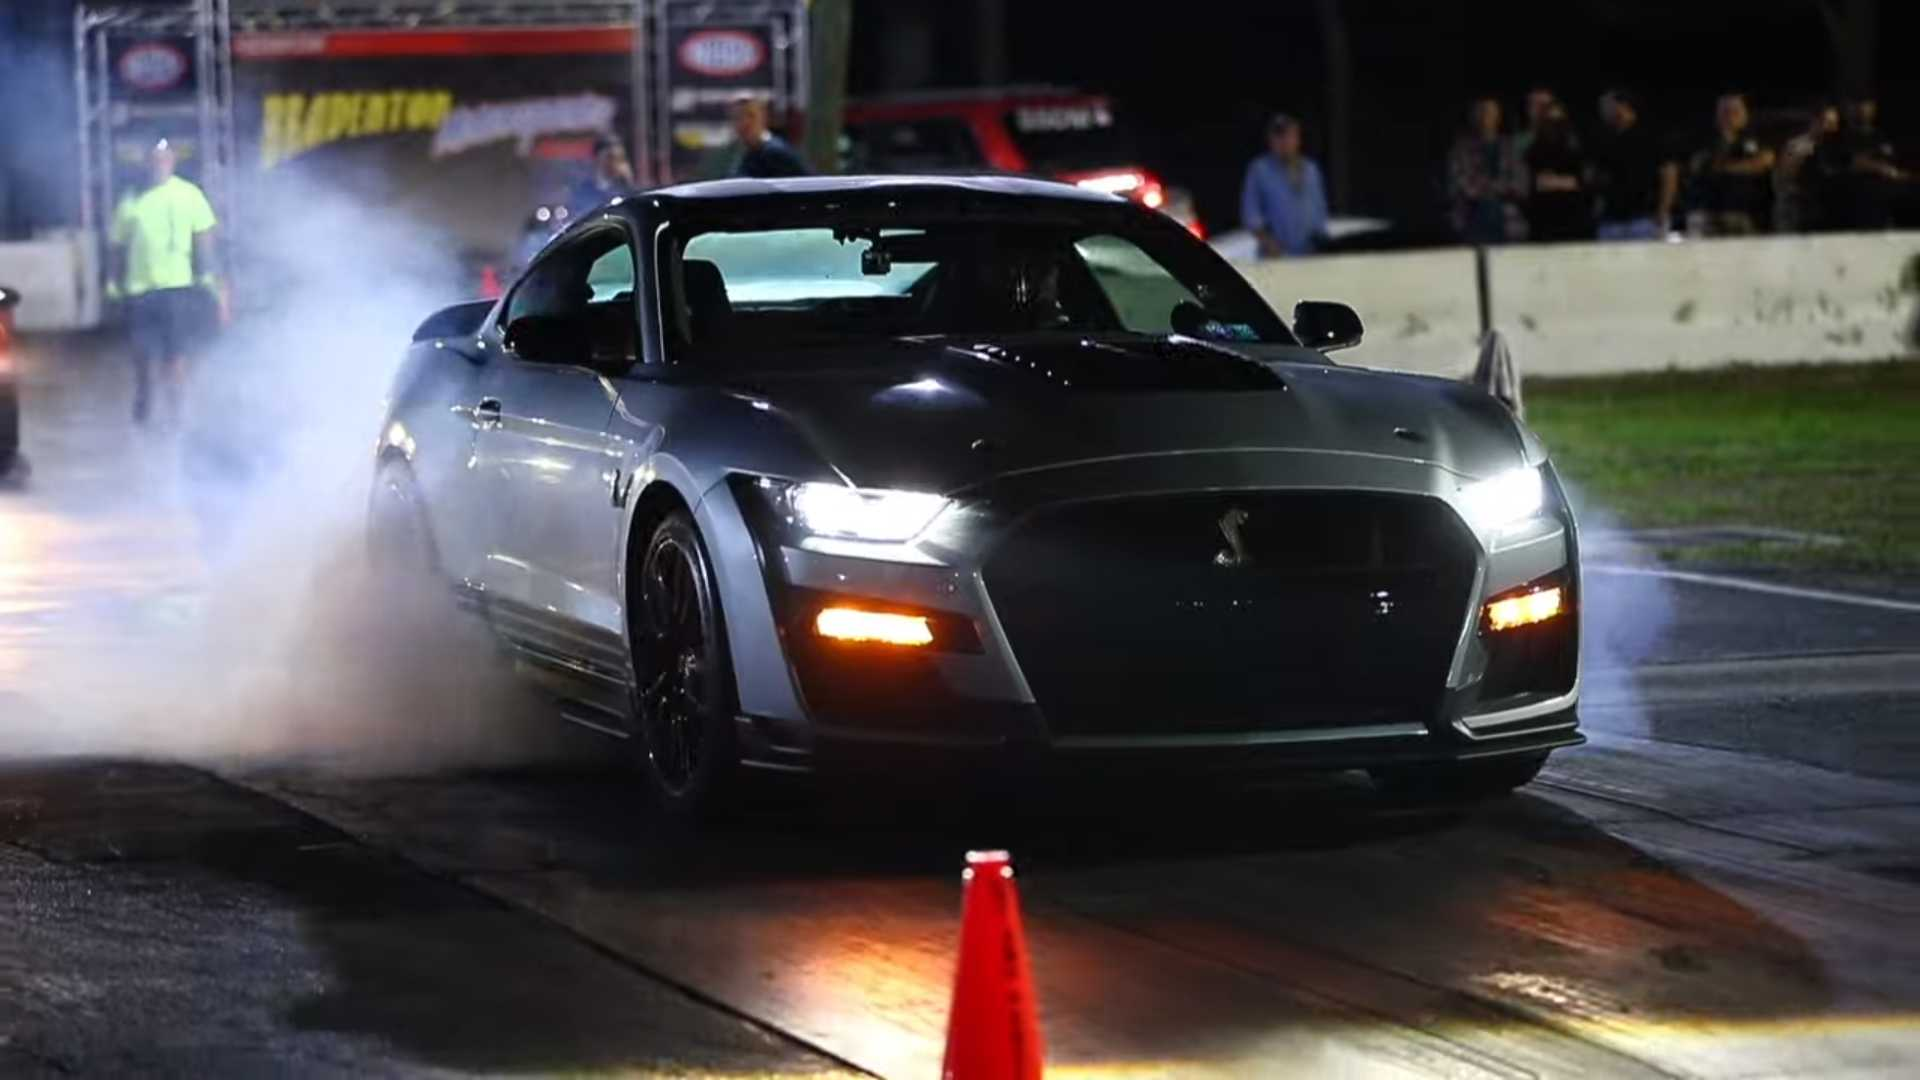 2020 Shelby GT500 With Over 1,000 HP Goes 9 Seconds At Drag Strip